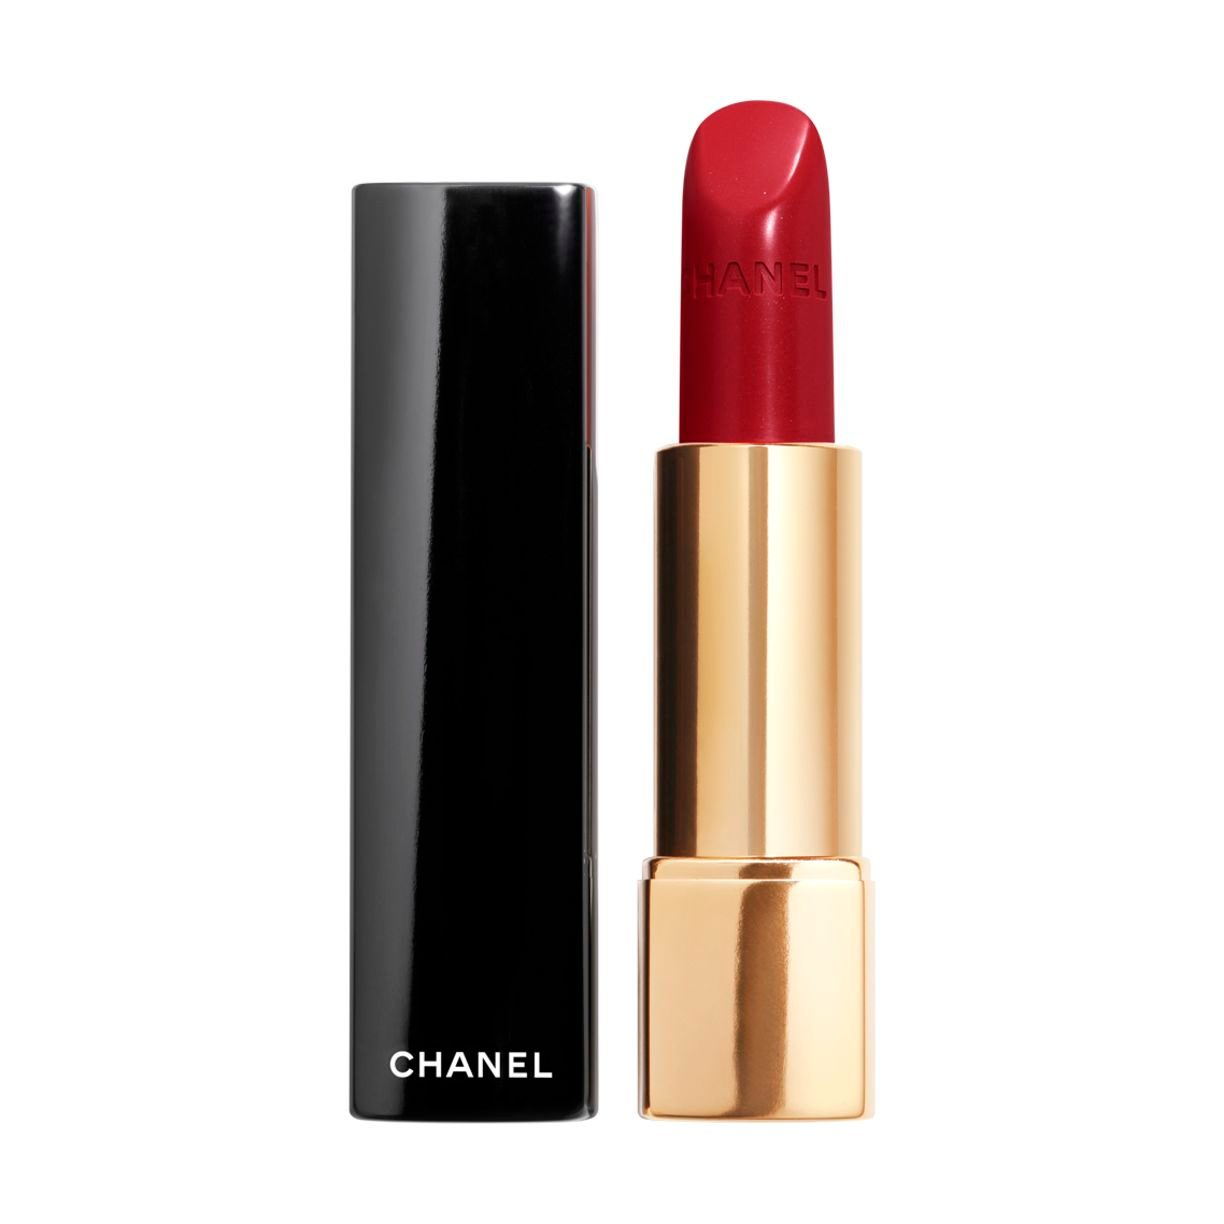 ROUGE ALLURE LA BARRA DE LABIOS CON INTENSIDAD 99 PIRATE 3.5G